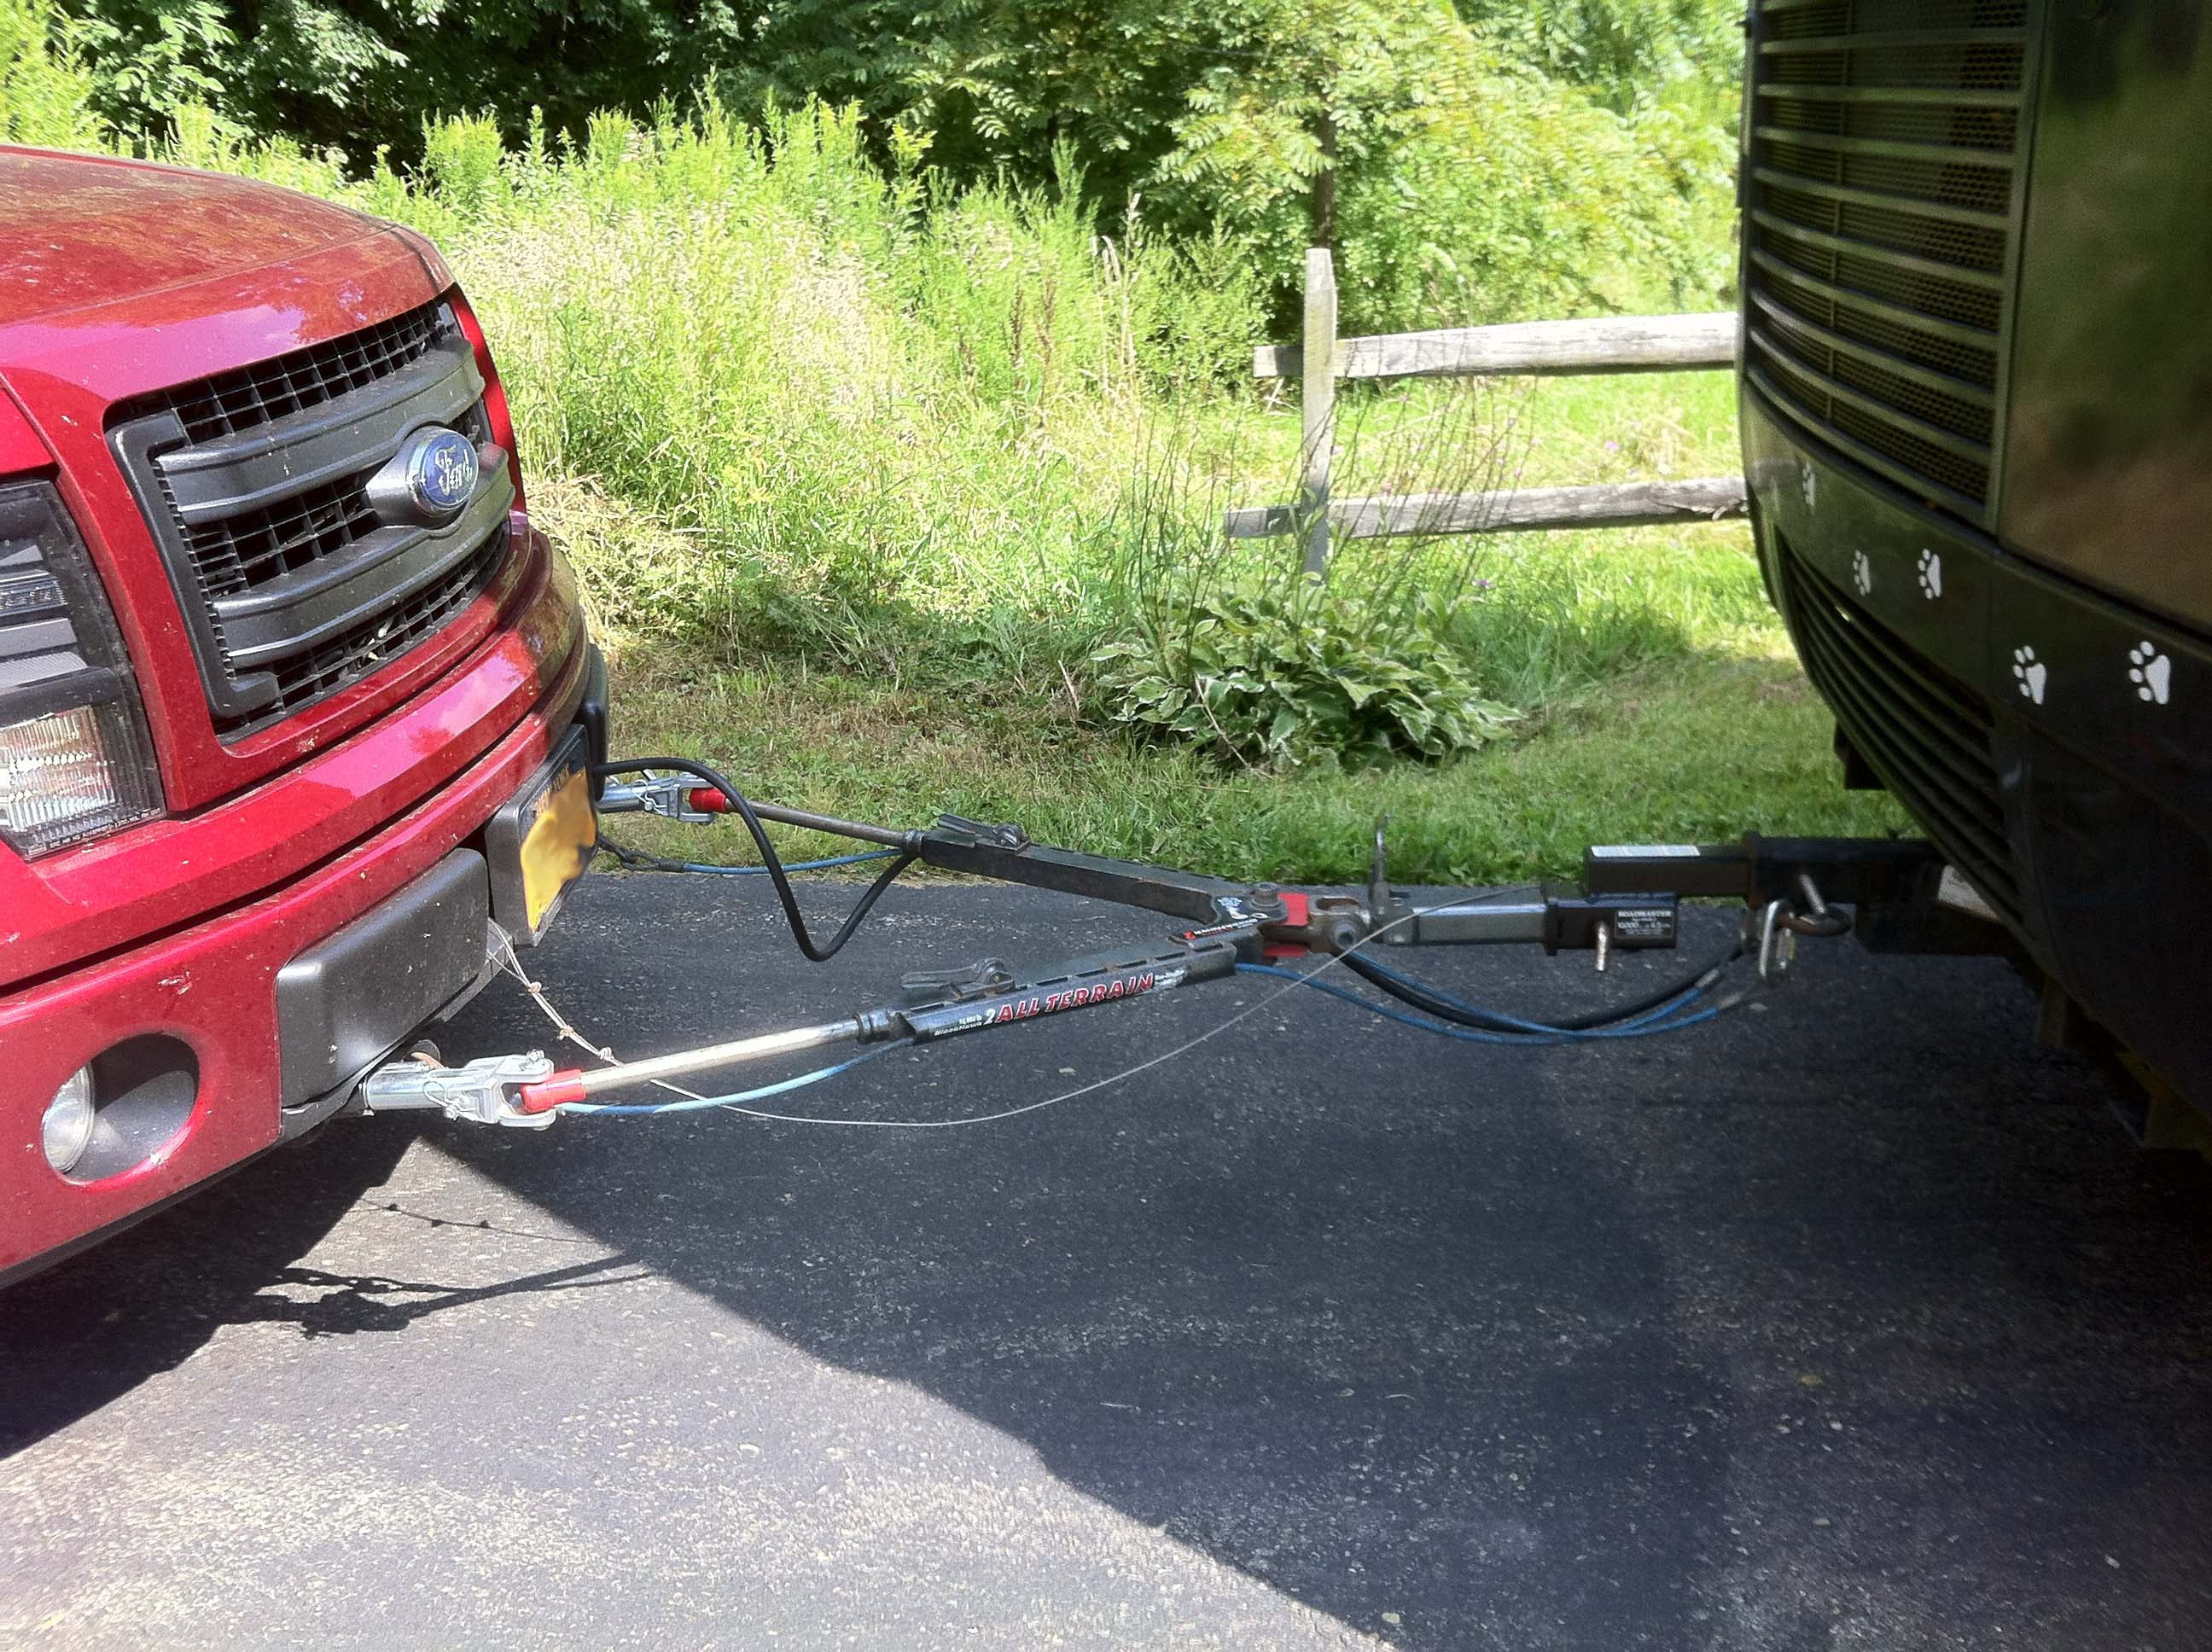 Setting up to flat tow f 150 behind a motorhome ford f150 forum click to enlarge sciox Gallery